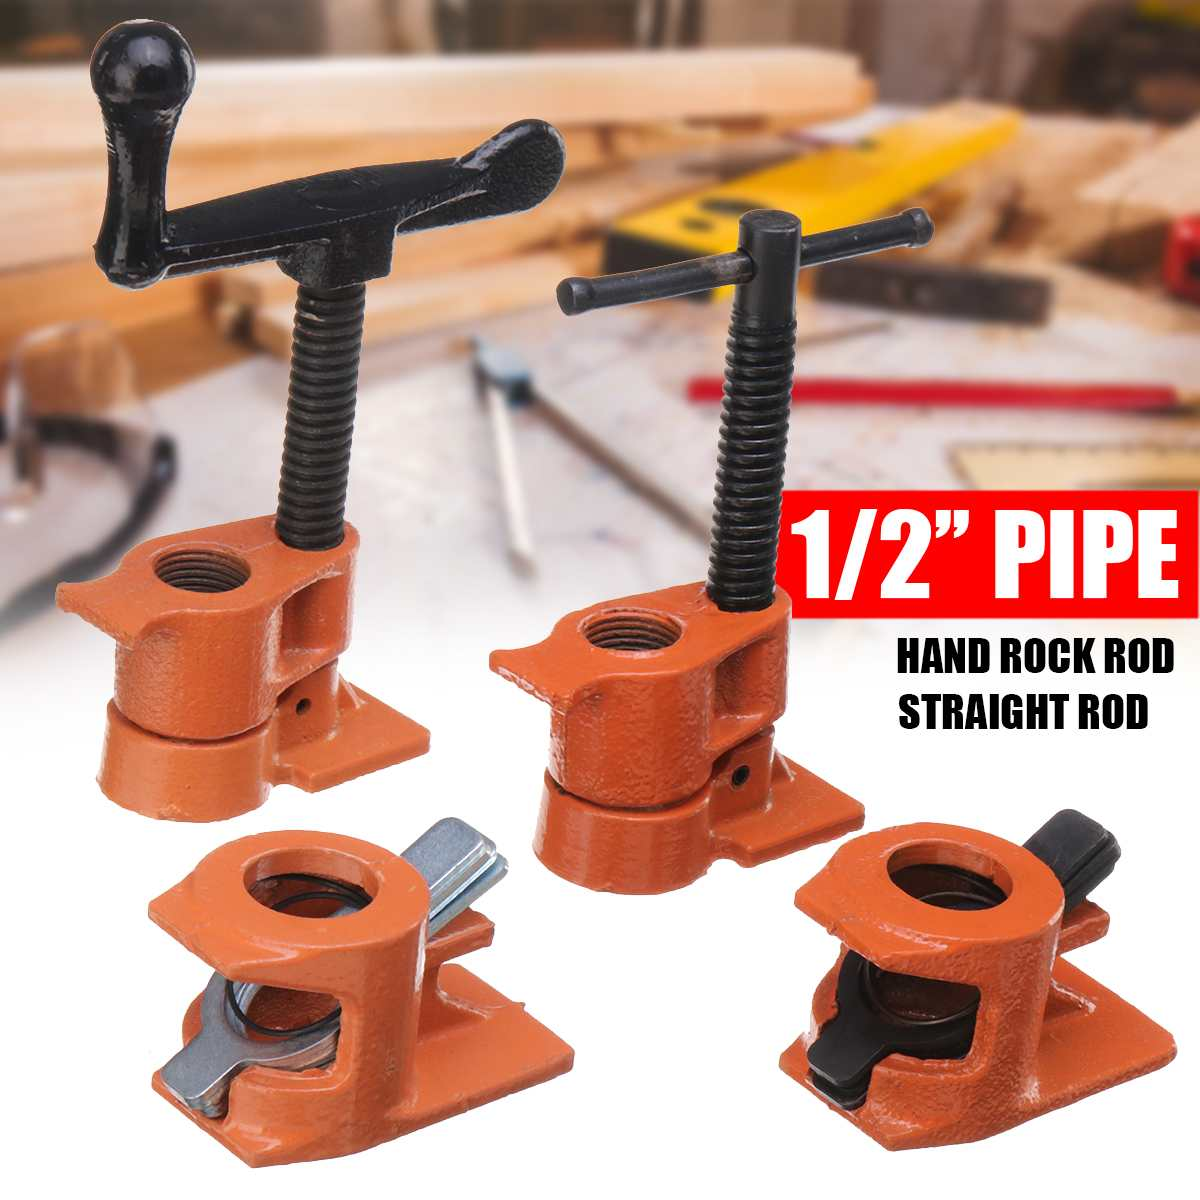 1/2 Inch Wood Gluing Pipe Clamp Quick Release Heavy Duty Hand Rock/Straight Rod Steel Clamps Fixture Carpenter Woodworking Tool1/2 Inch Wood Gluing Pipe Clamp Quick Release Heavy Duty Hand Rock/Straight Rod Steel Clamps Fixture Carpenter Woodworking Tool